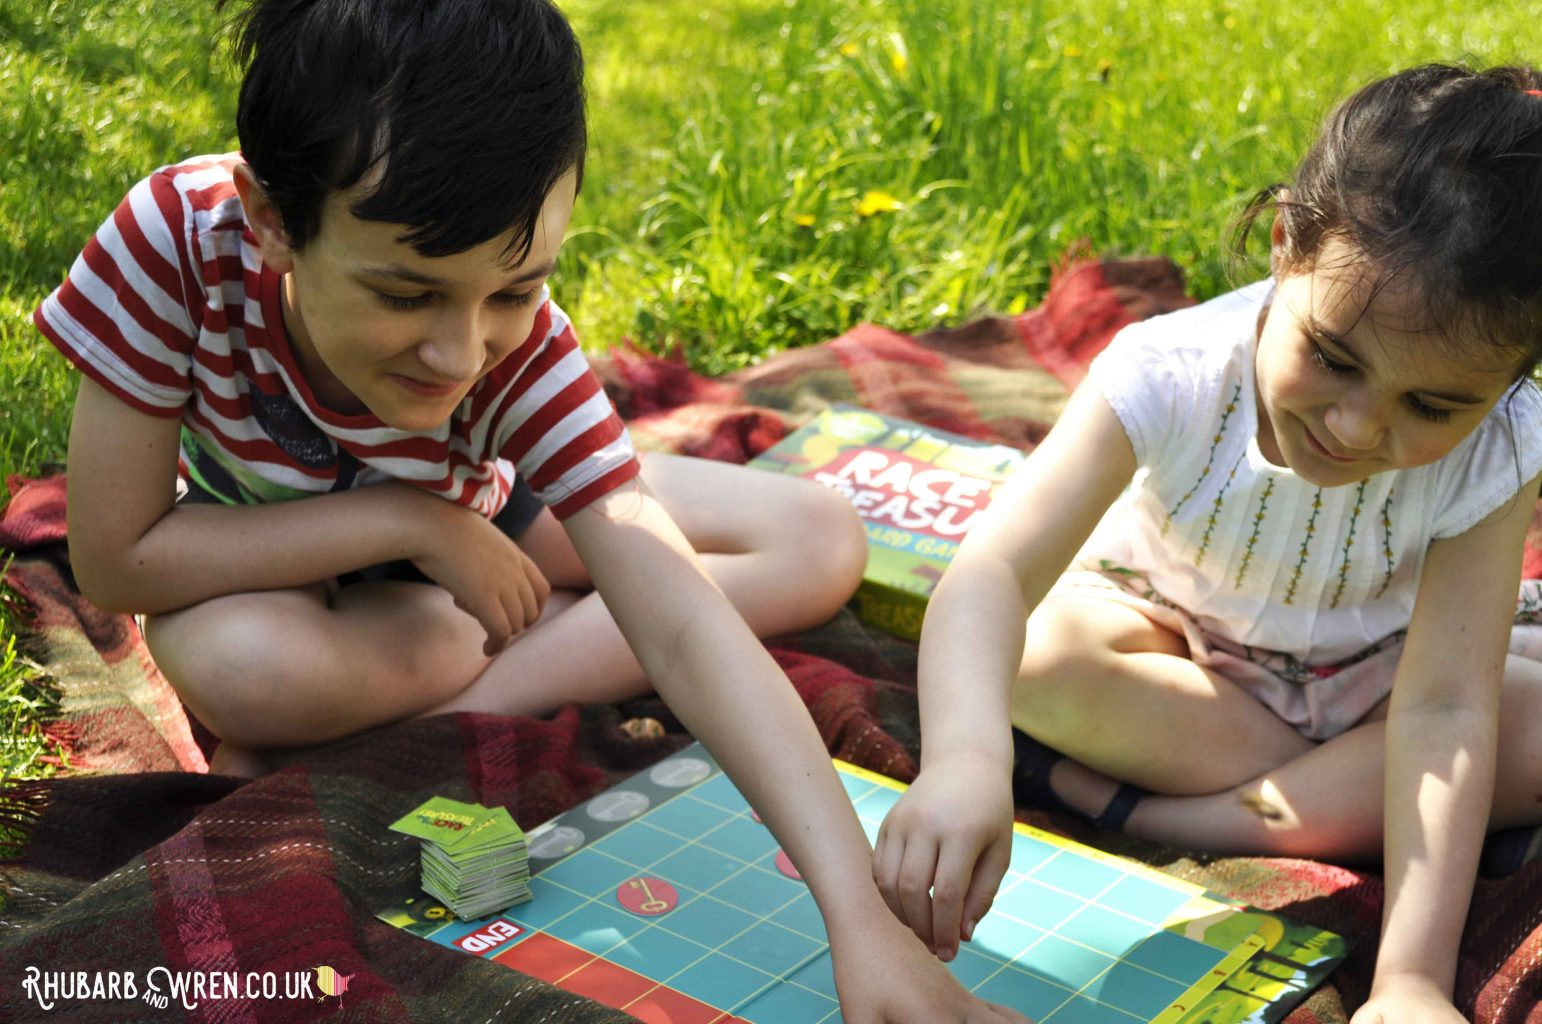 two children playing a Peaceable Kingdom board game - Race to the Treasure